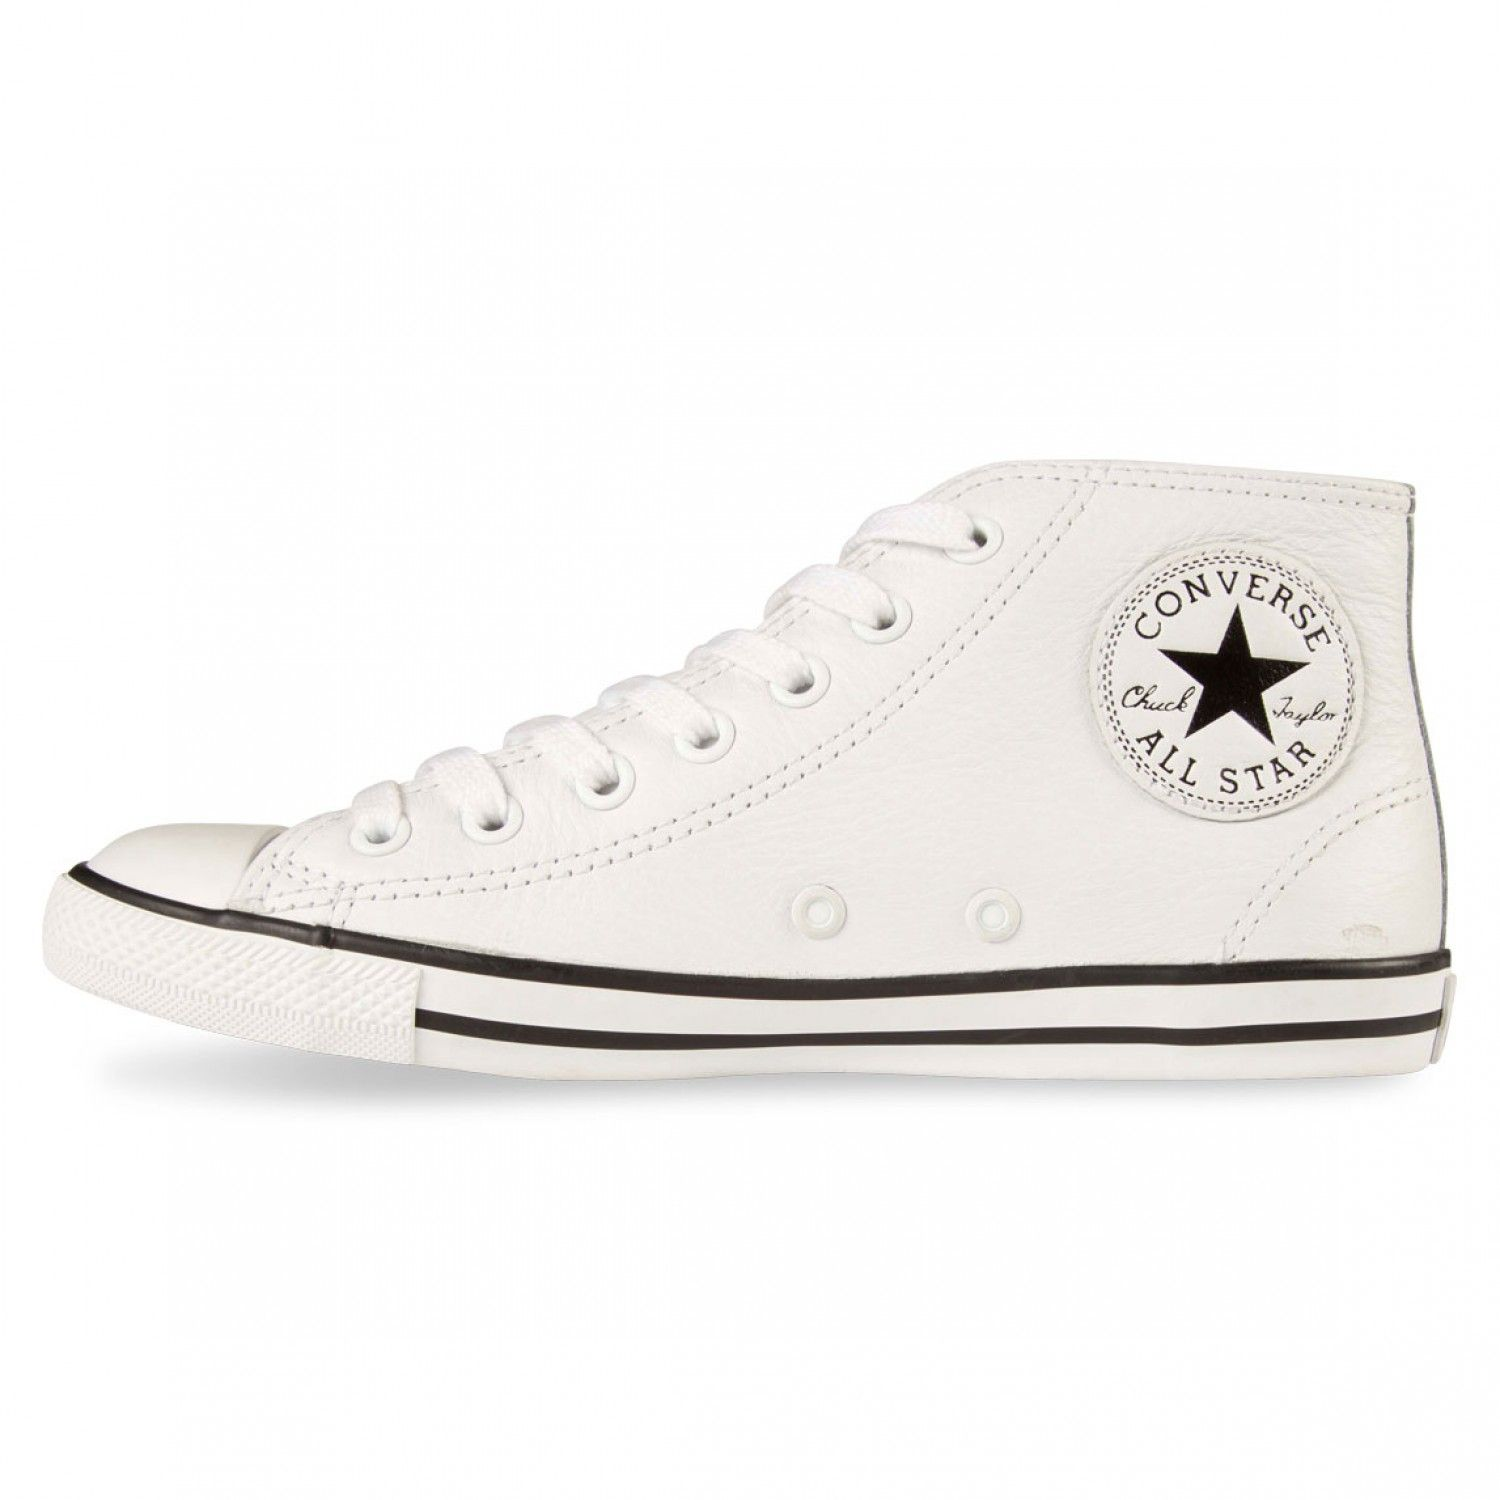 Converse All Mid Converse Star LeatherKicks Dainty bY7gvIyf6